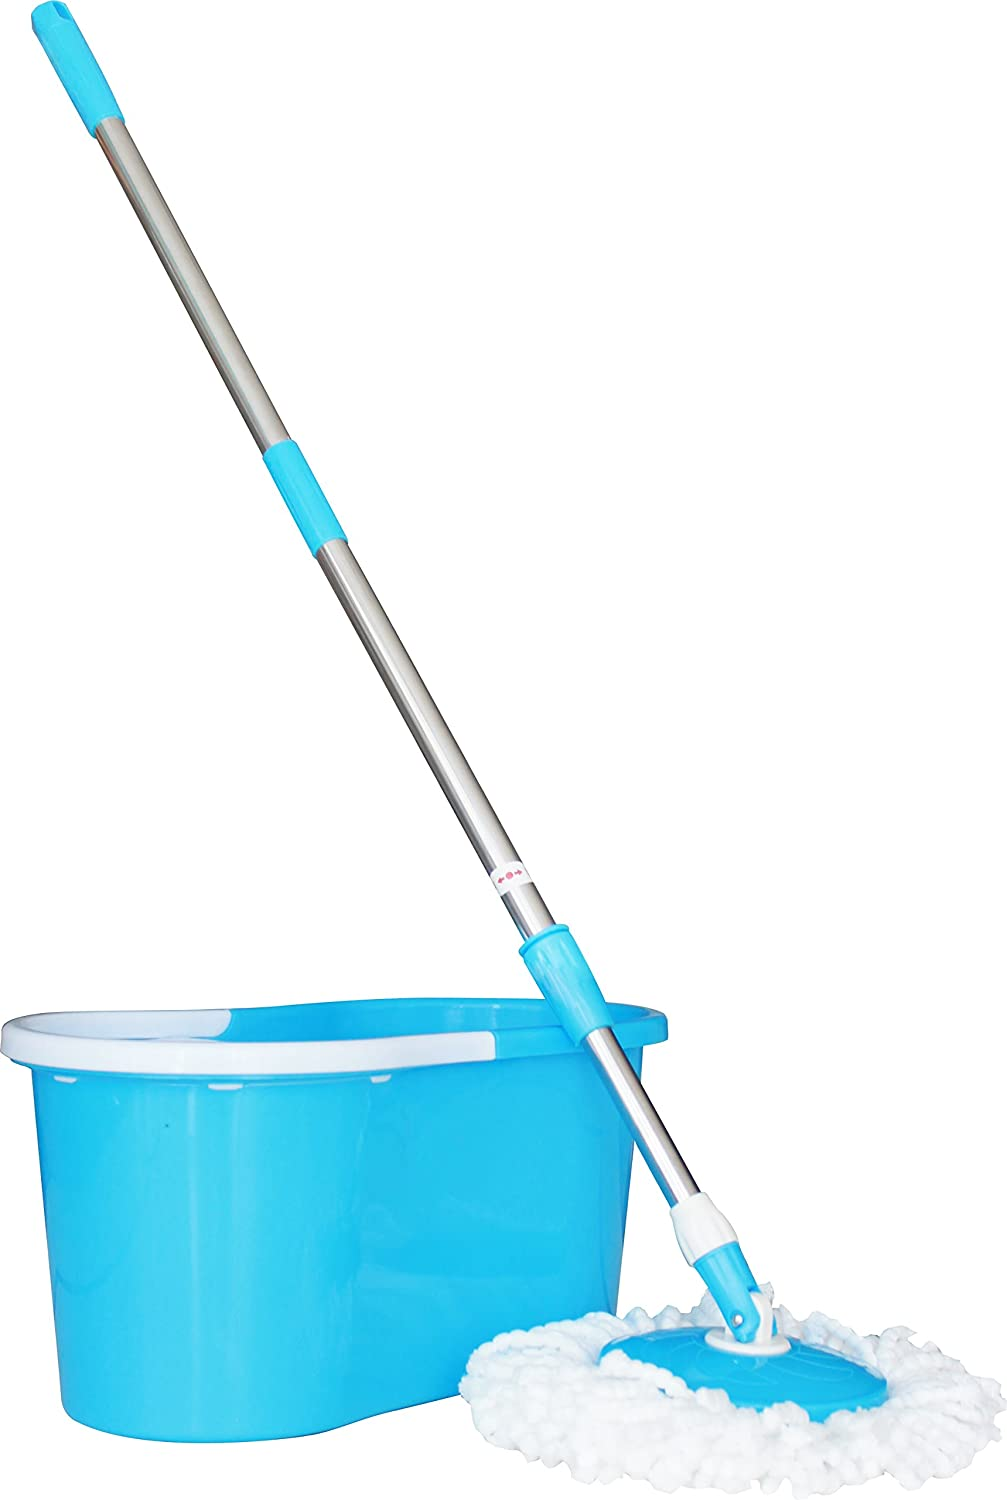 Princeware 6207 360-Degree Magic Mop (Blue)